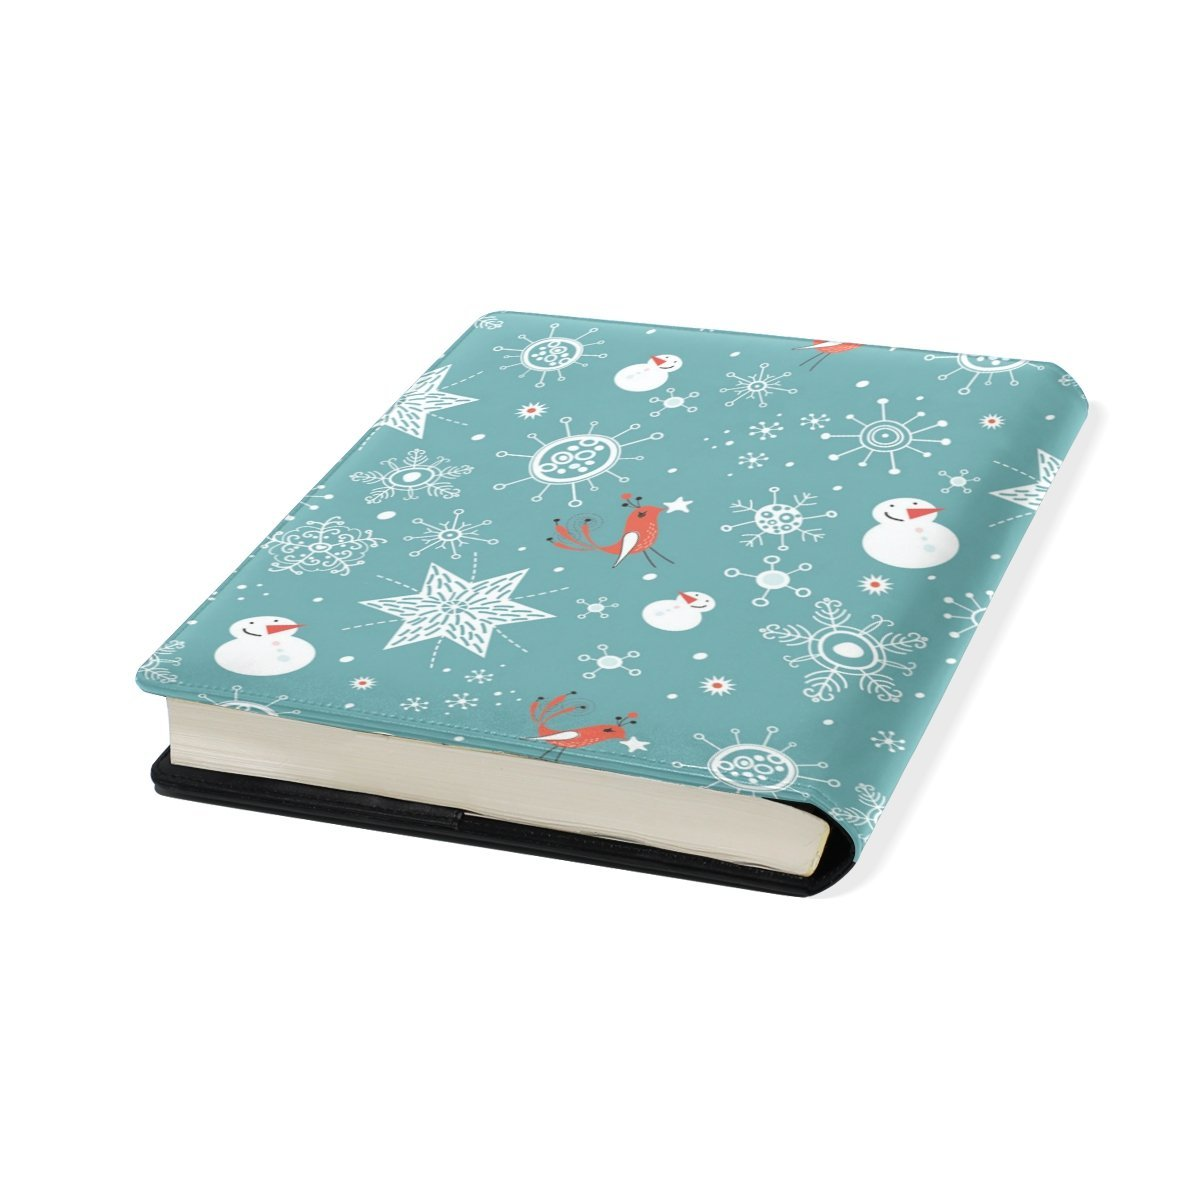 Sunlome Winter Snowman Snowflake Bird Pattern Stretchable PU Leather Book Cover 9 x 11 Inches Fits for School Hardcover Textbooks